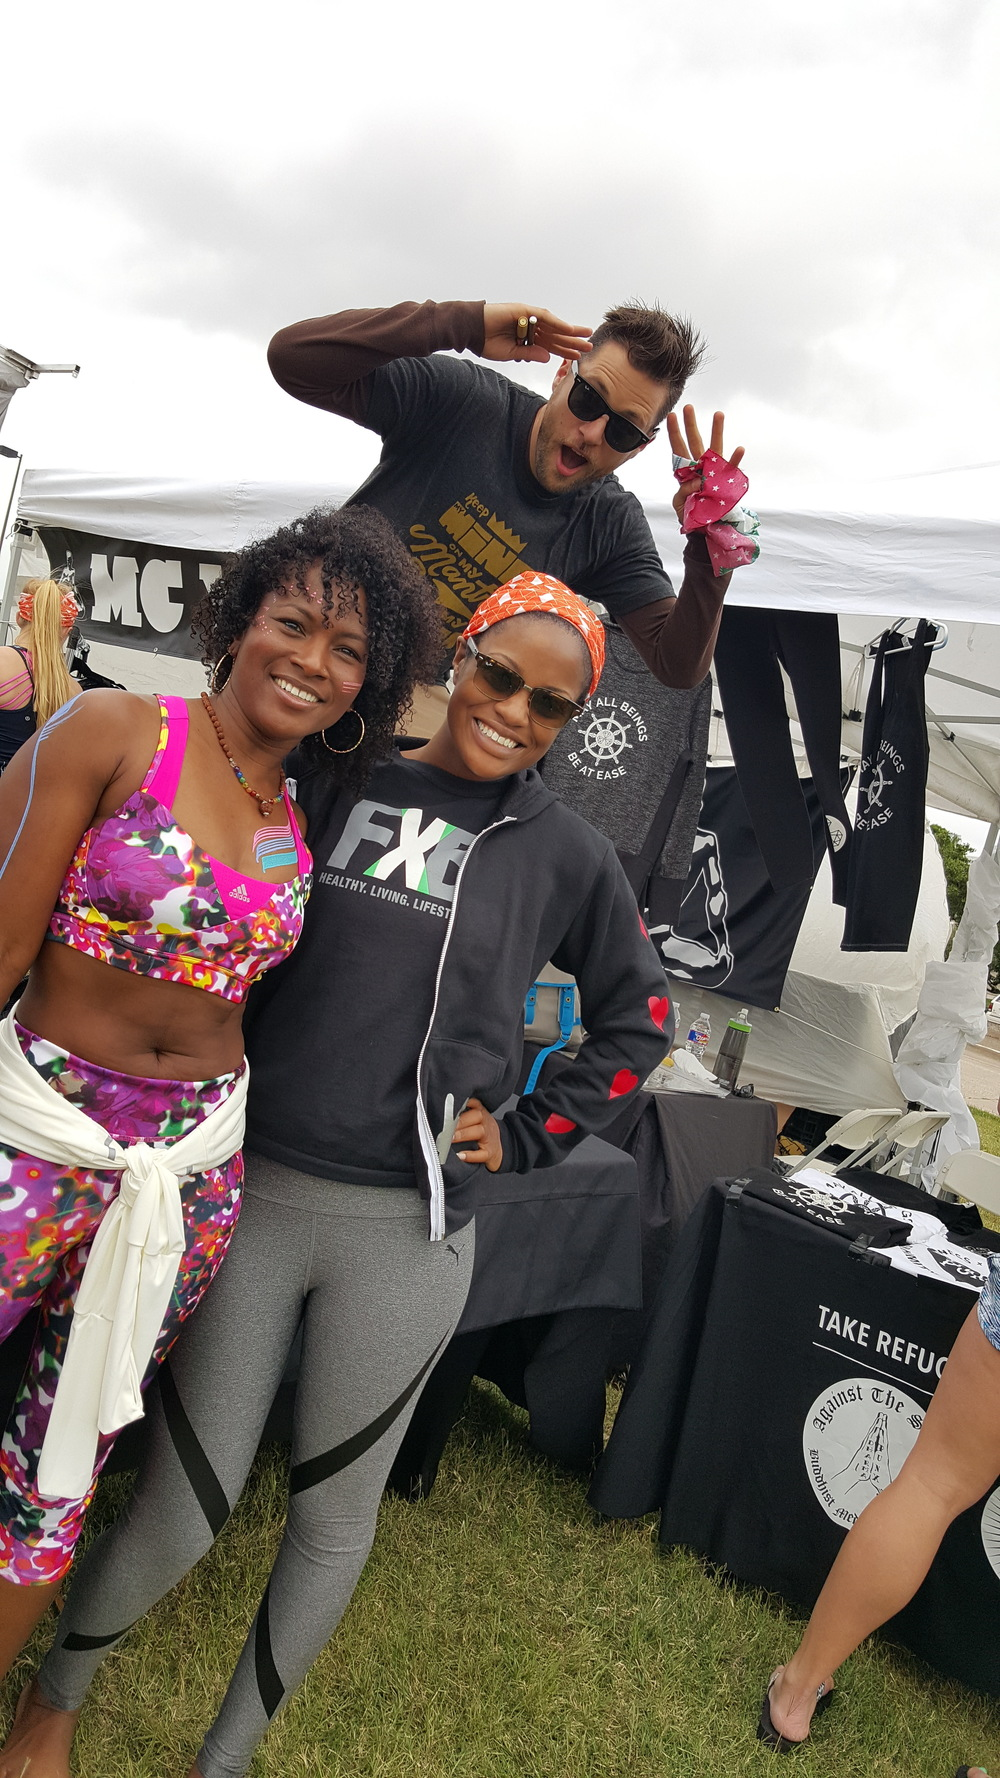 Faith Hunter, MC Yogi, and Fit X Brit. Image FitXBrit